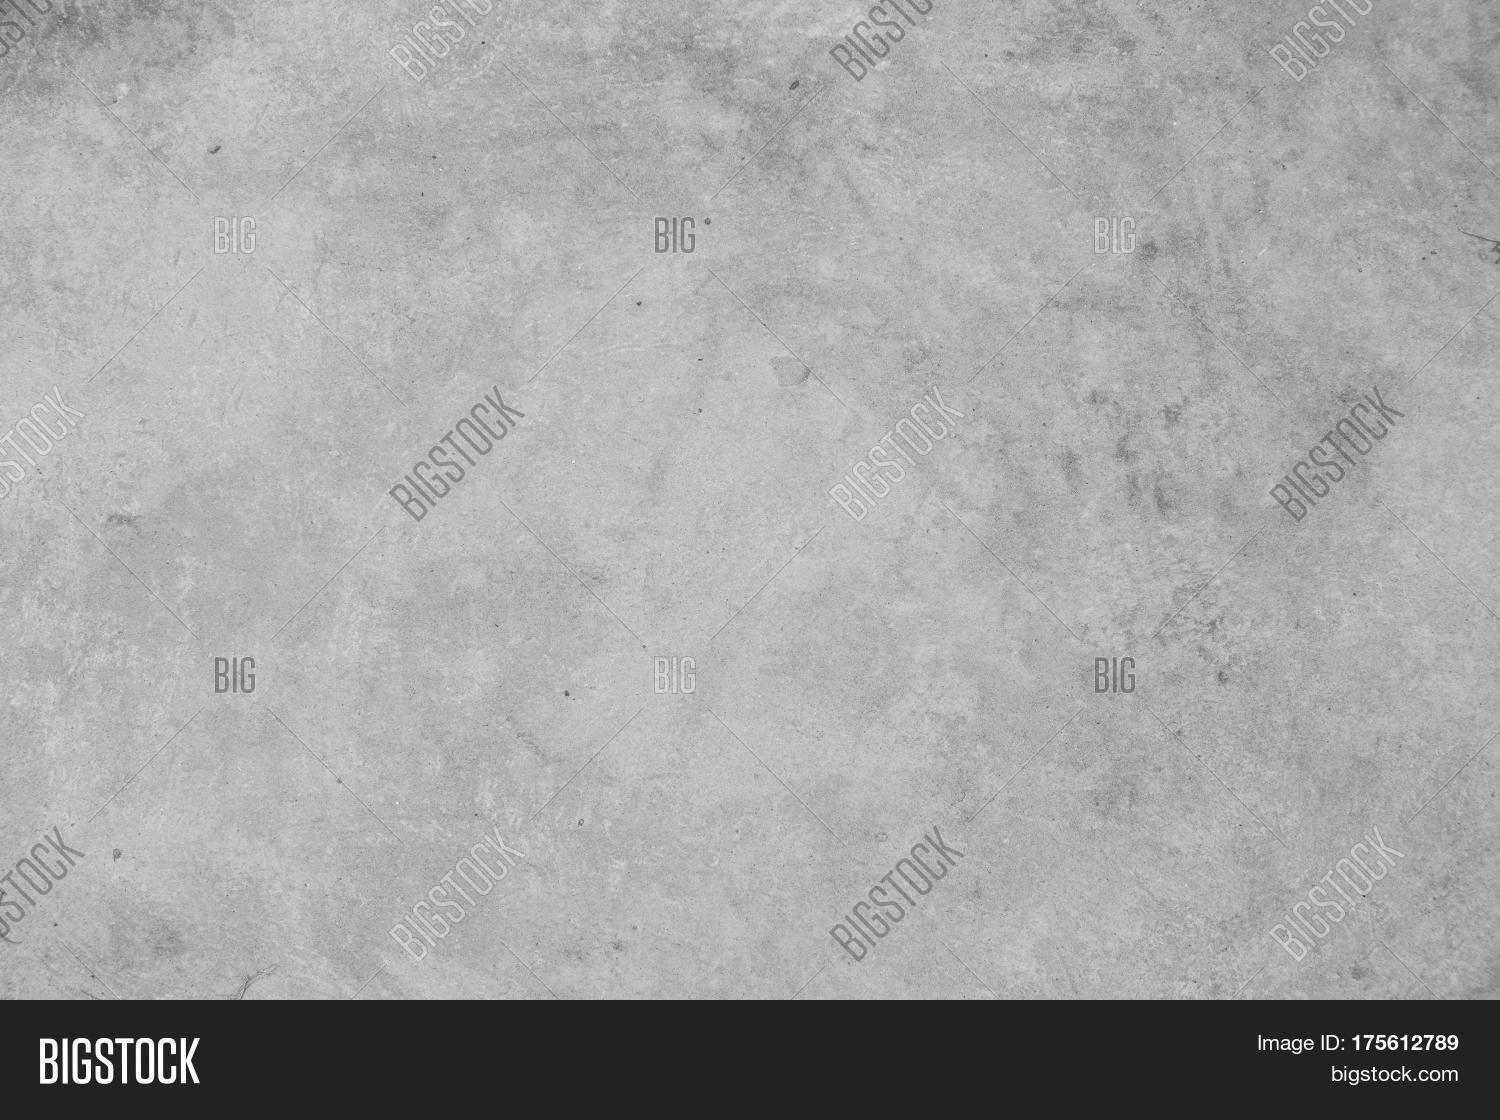 Rustic concrete texture photo for background Shabby chic backdrop